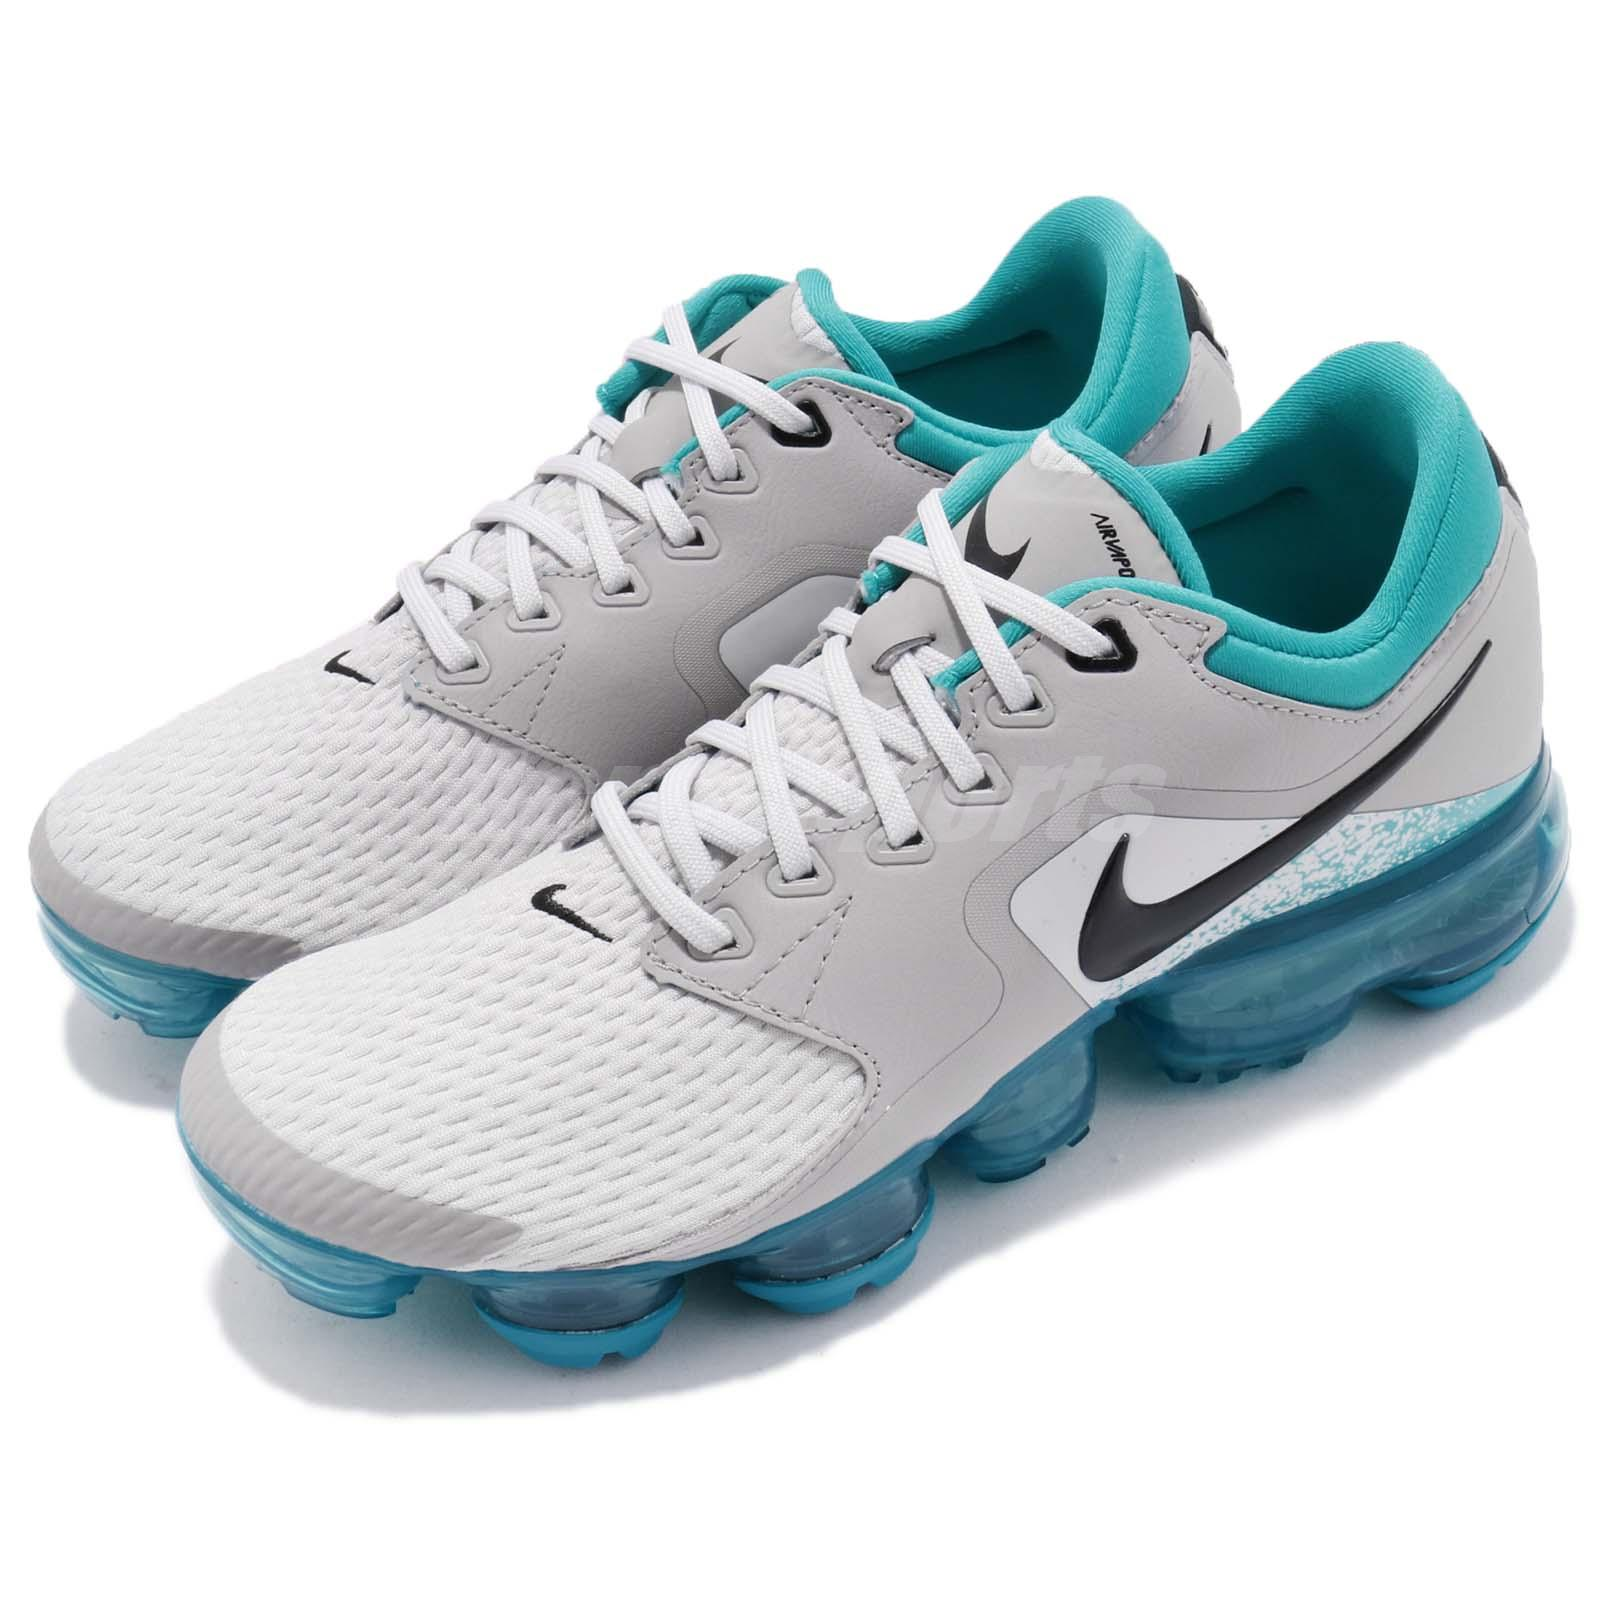 dbc57265150 Details about Nike Air Vapormax GS Vast Grey Blue Black Kids Women Running  Shoes 917963-011